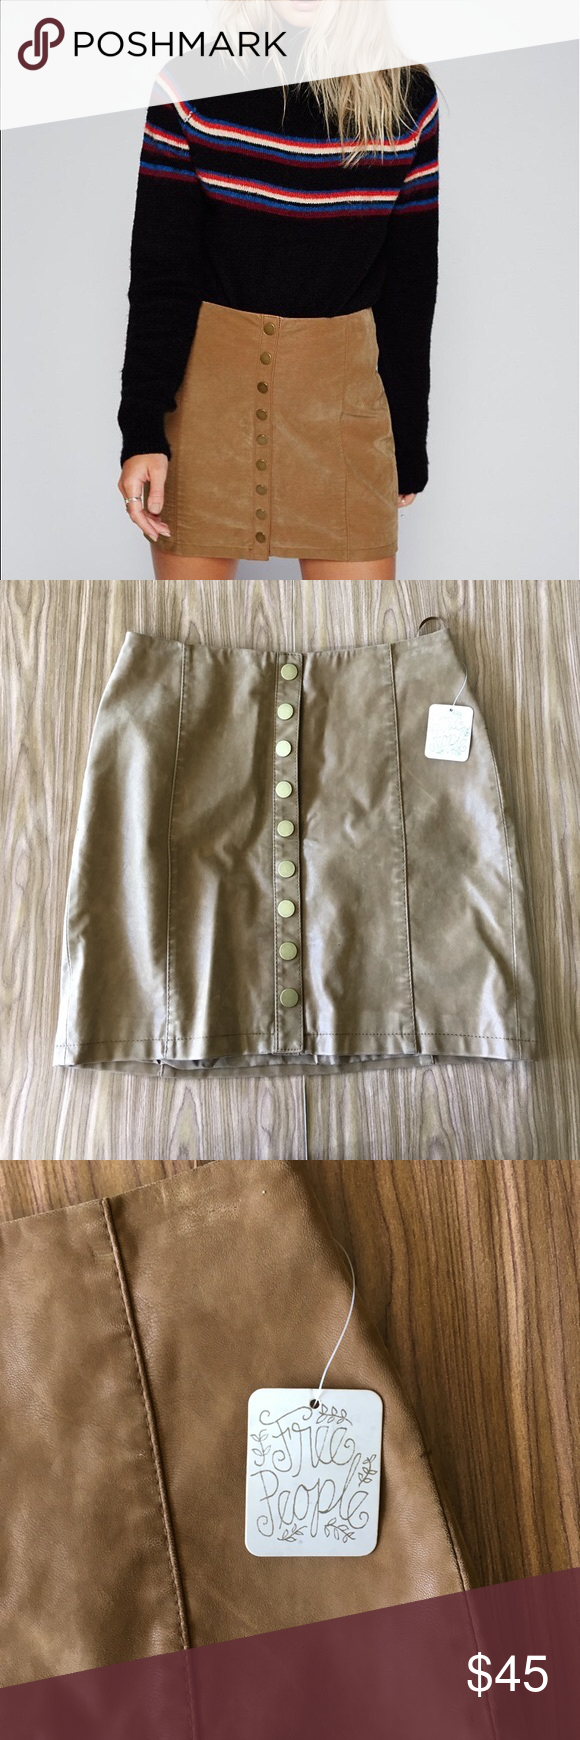 c9772d495 NWT Free People Oh Snap Vegan Leather Mini Skirt Brand new with tags free  People vegan faux leather mini skirt Free People Skirts